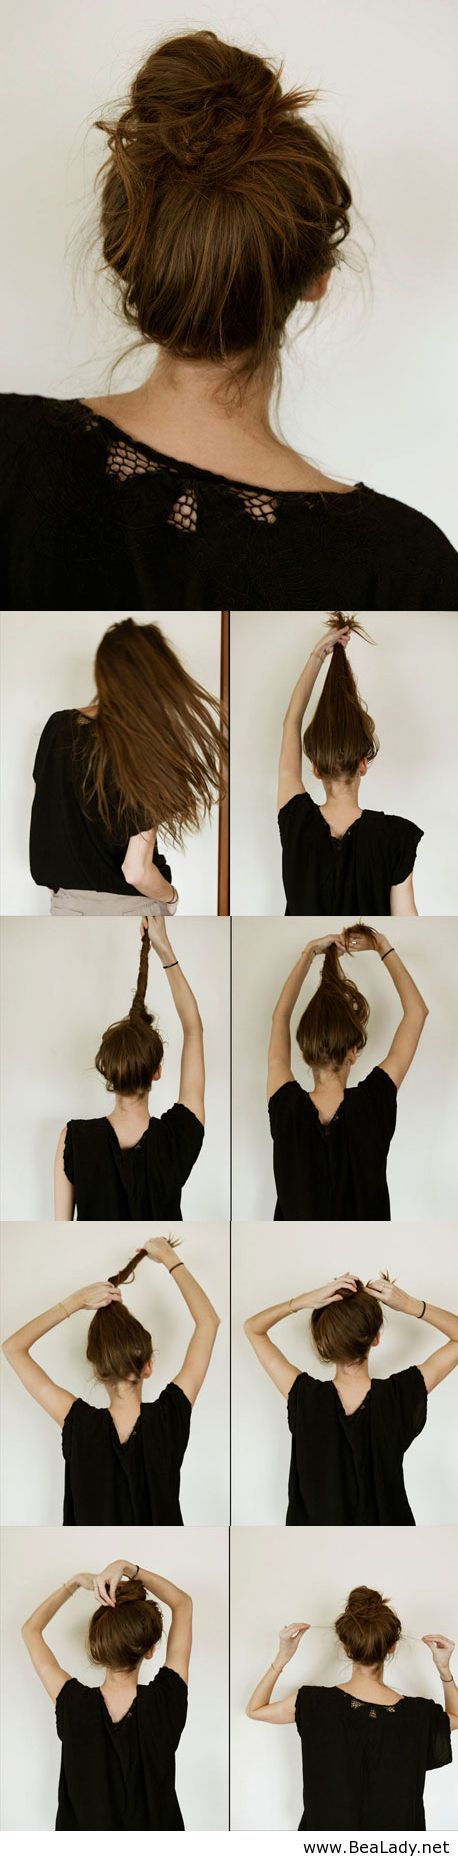 Knotted Top Bun Hairstyle